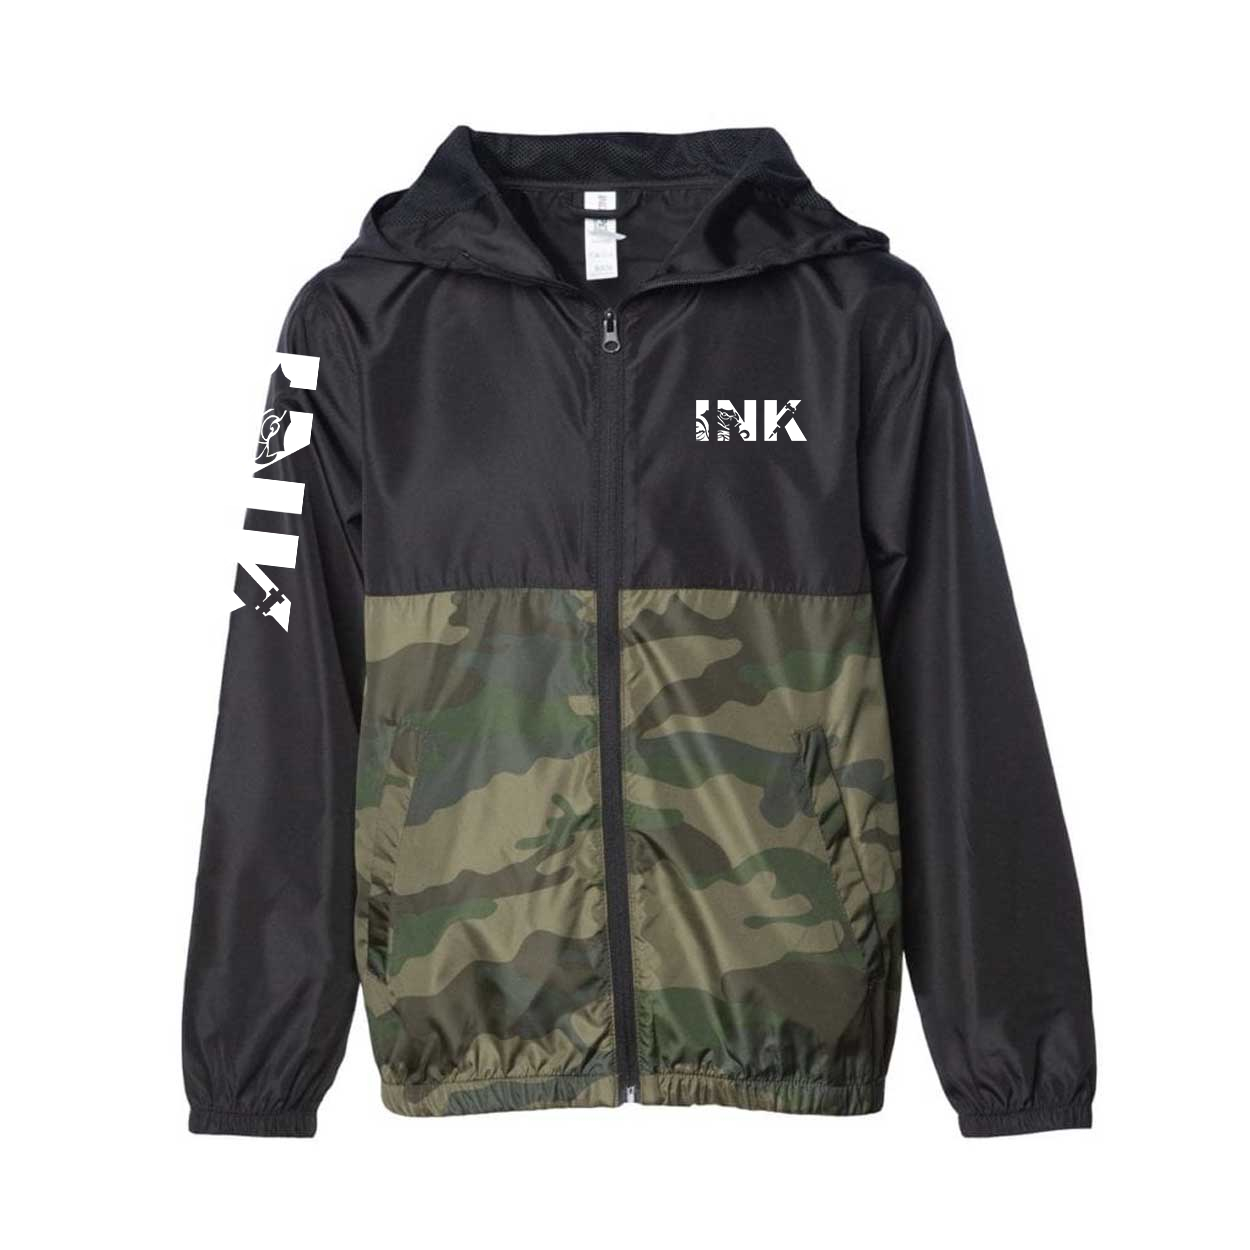 Ink Tattoo Logo Classic Youth Lightweight Windbreaker Black/Forest Camo (White Logo)